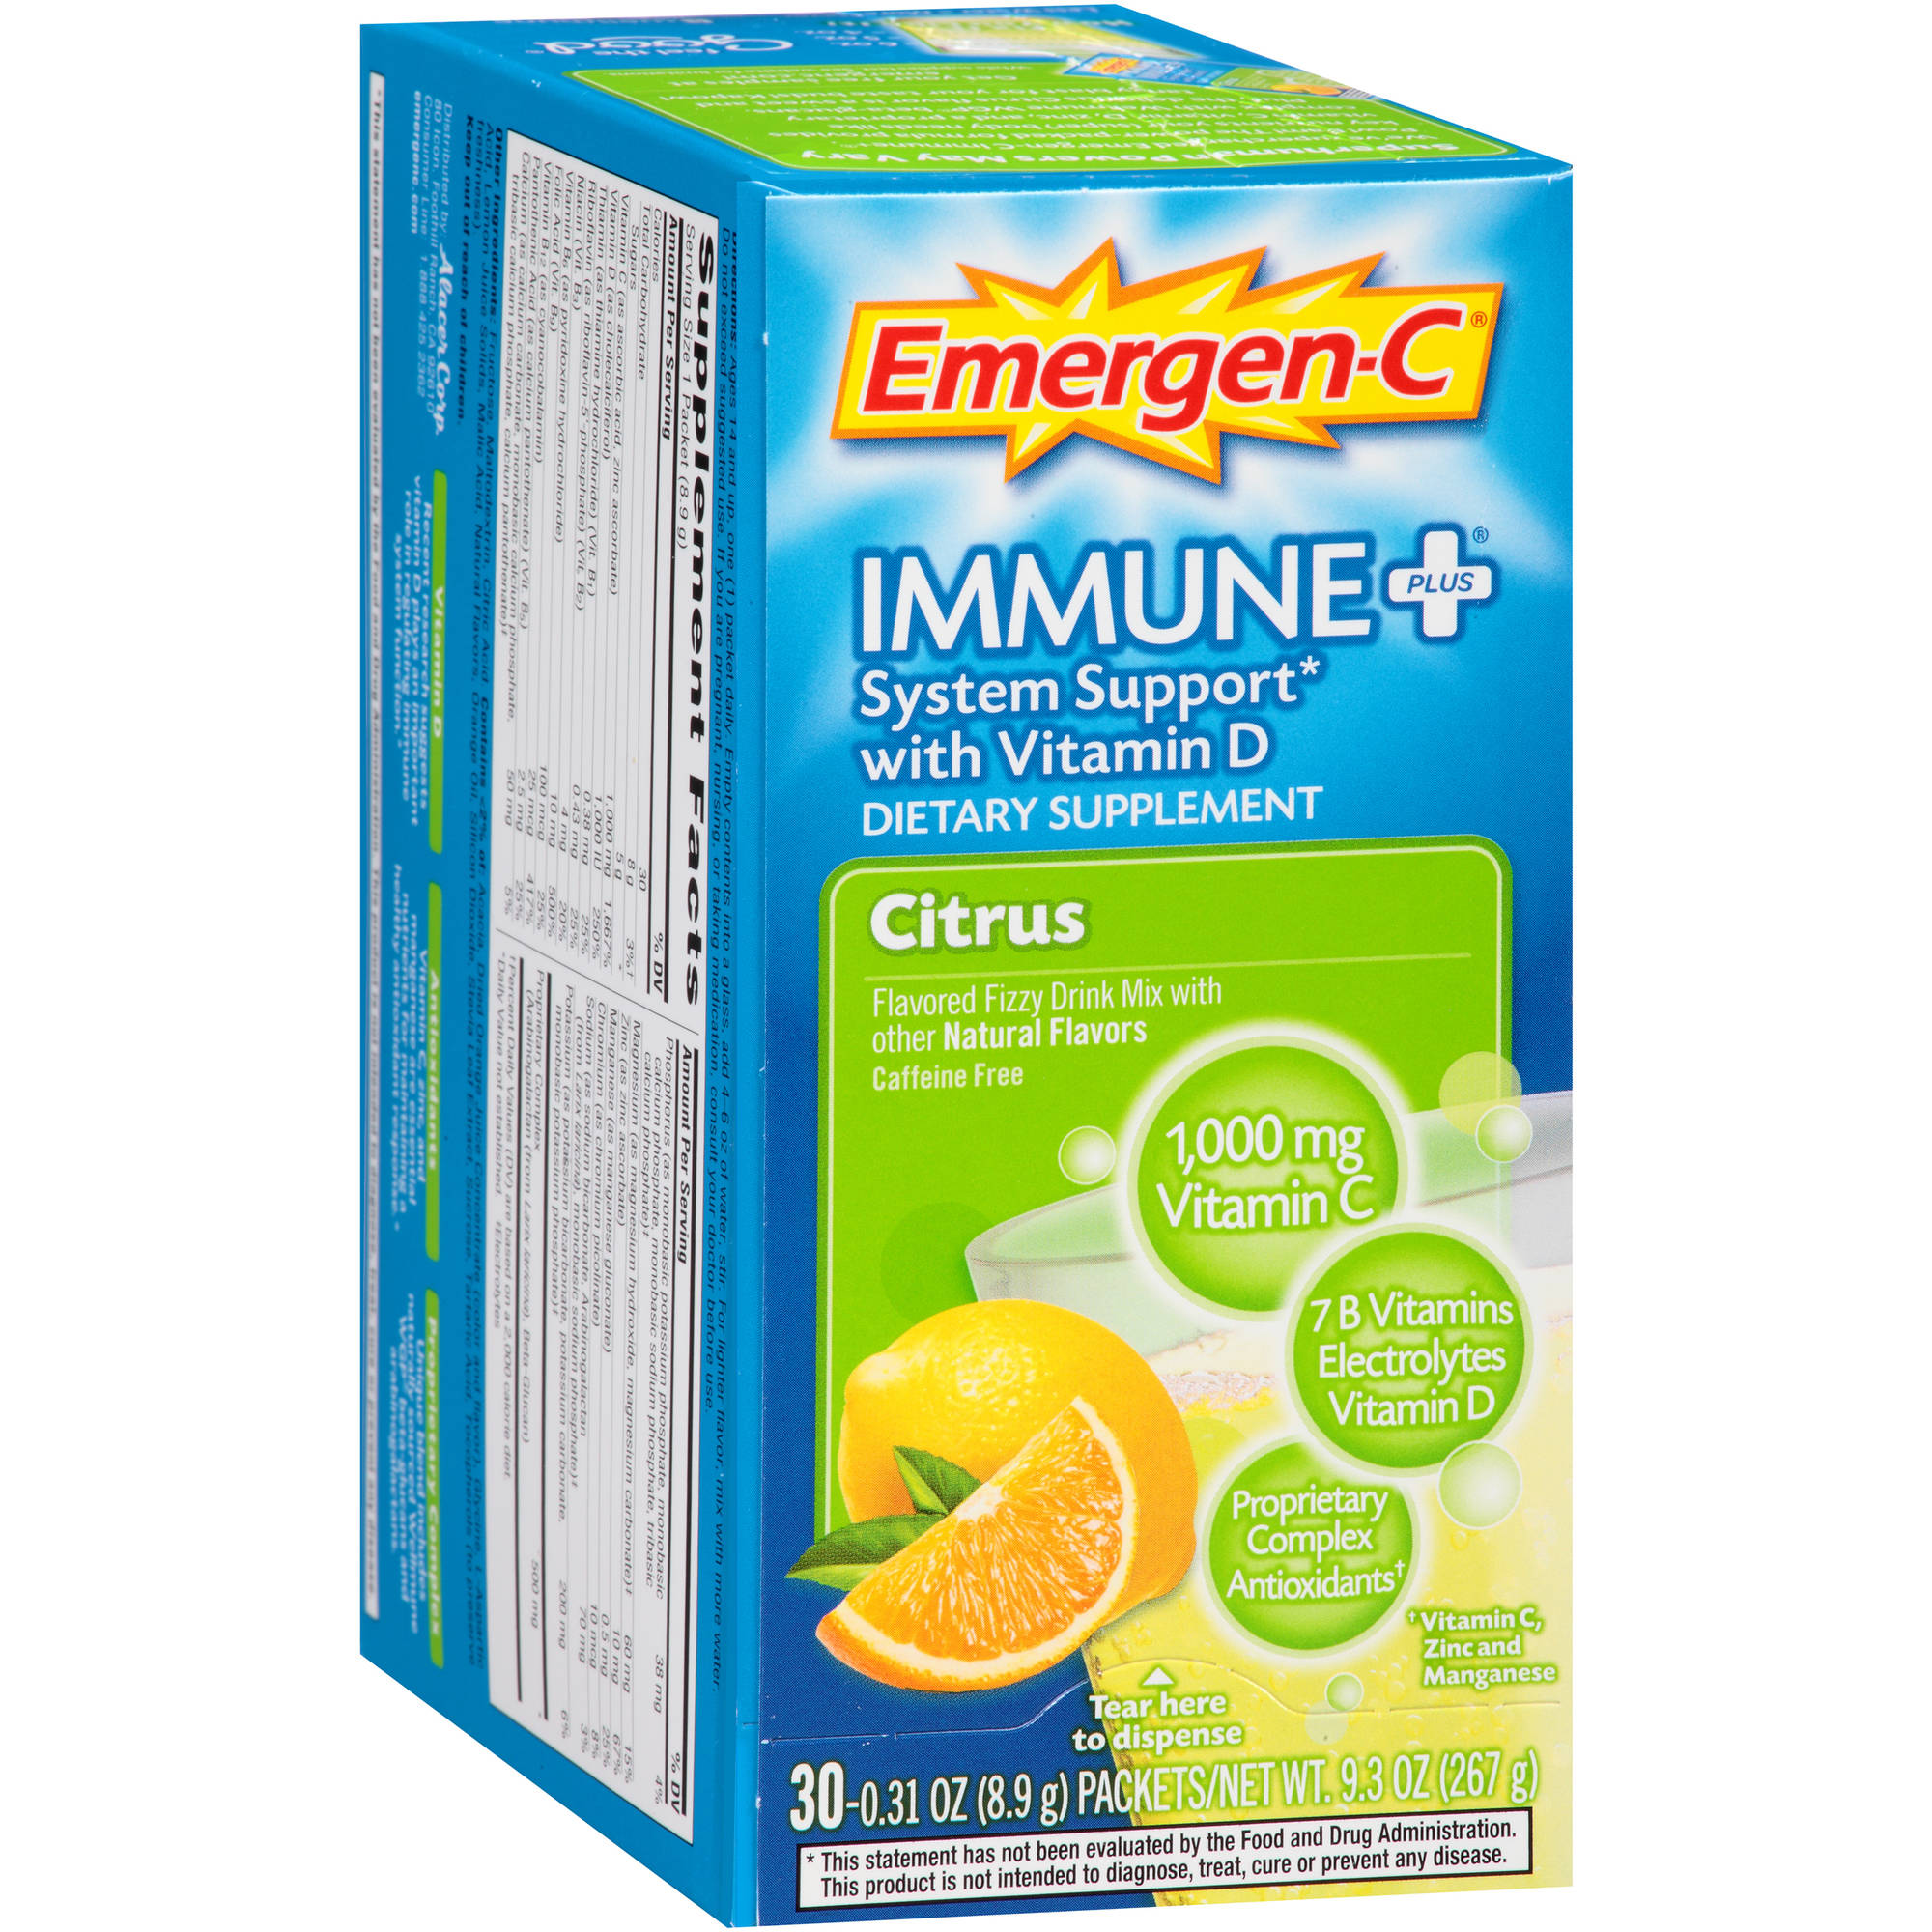 Emergen-C Immune+ (30 Count, Citrus Flavor) Dietary Supplement With Vitamin D Fizzy Drink Mix, 1000mg Vitamin C, 0.31 Ounce Packets